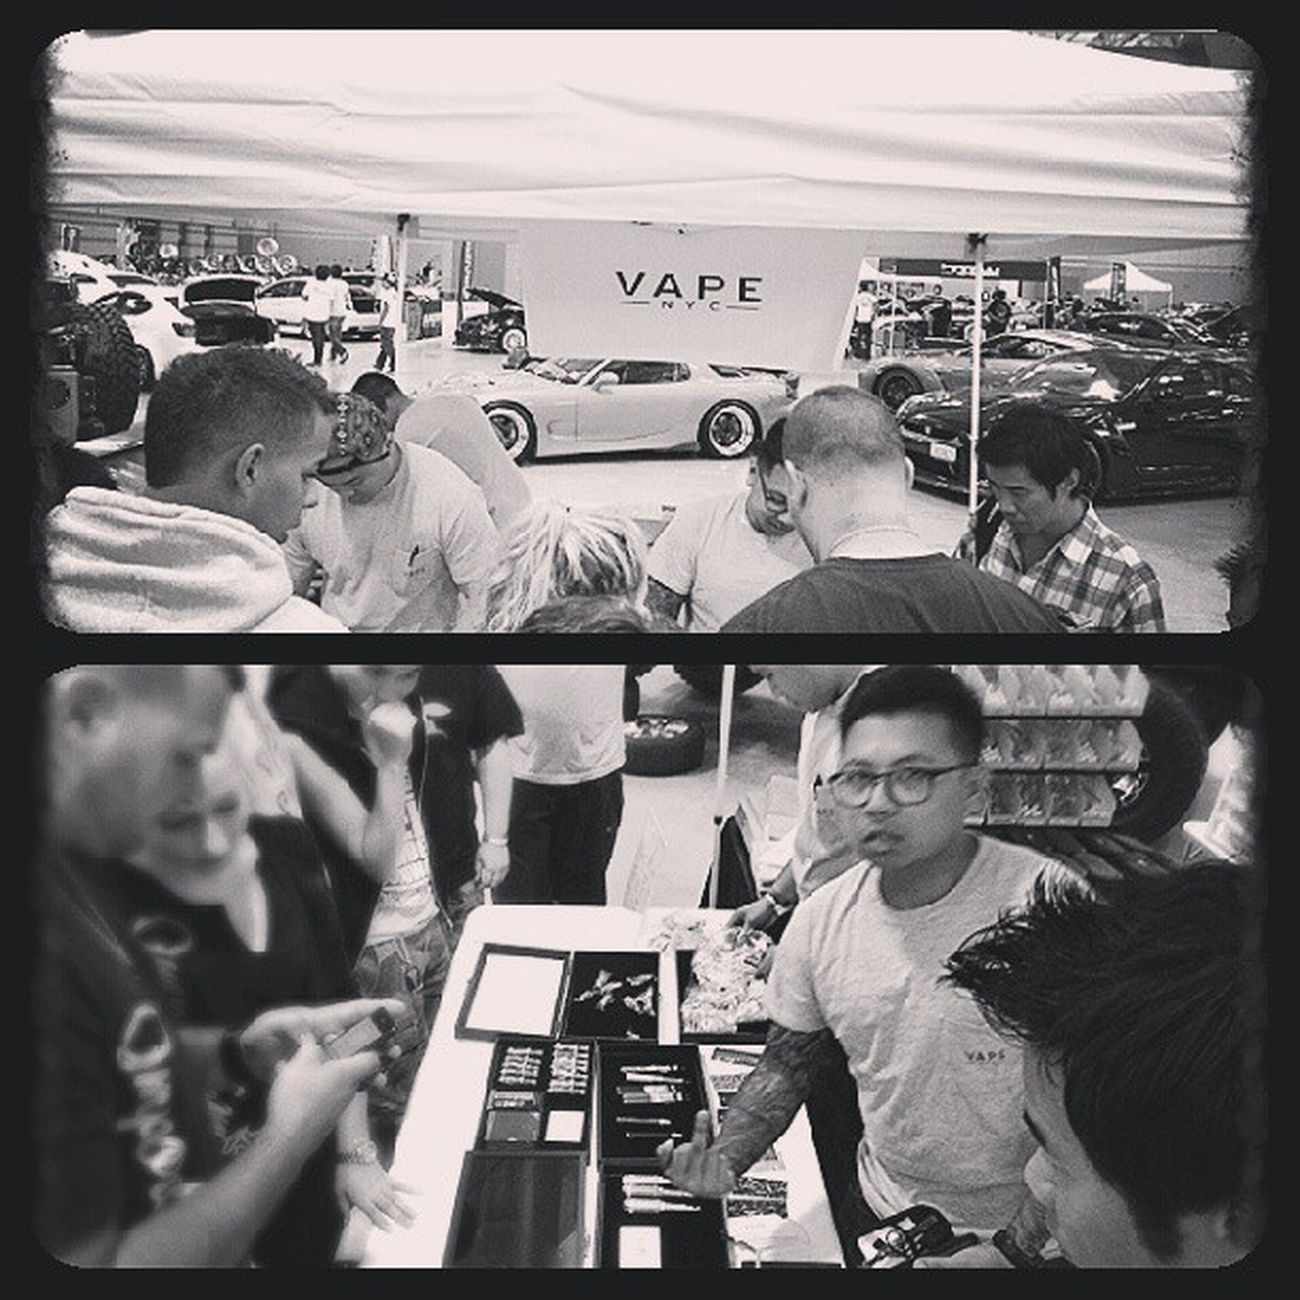 Big shout out to @vapenyc for showing love yesterday at @importexpo make sure to follow them for all your vaping needs. They got everything you need with great prices and some of the best customer service you will ever get. Just watch out for @varick he will follow you home. Haha j/k press that green button ASAP Nycalive Vapenyc Vape Vaping clouds importexpo atlanticcity nyc middlefinger lol goodtimes goodpeople